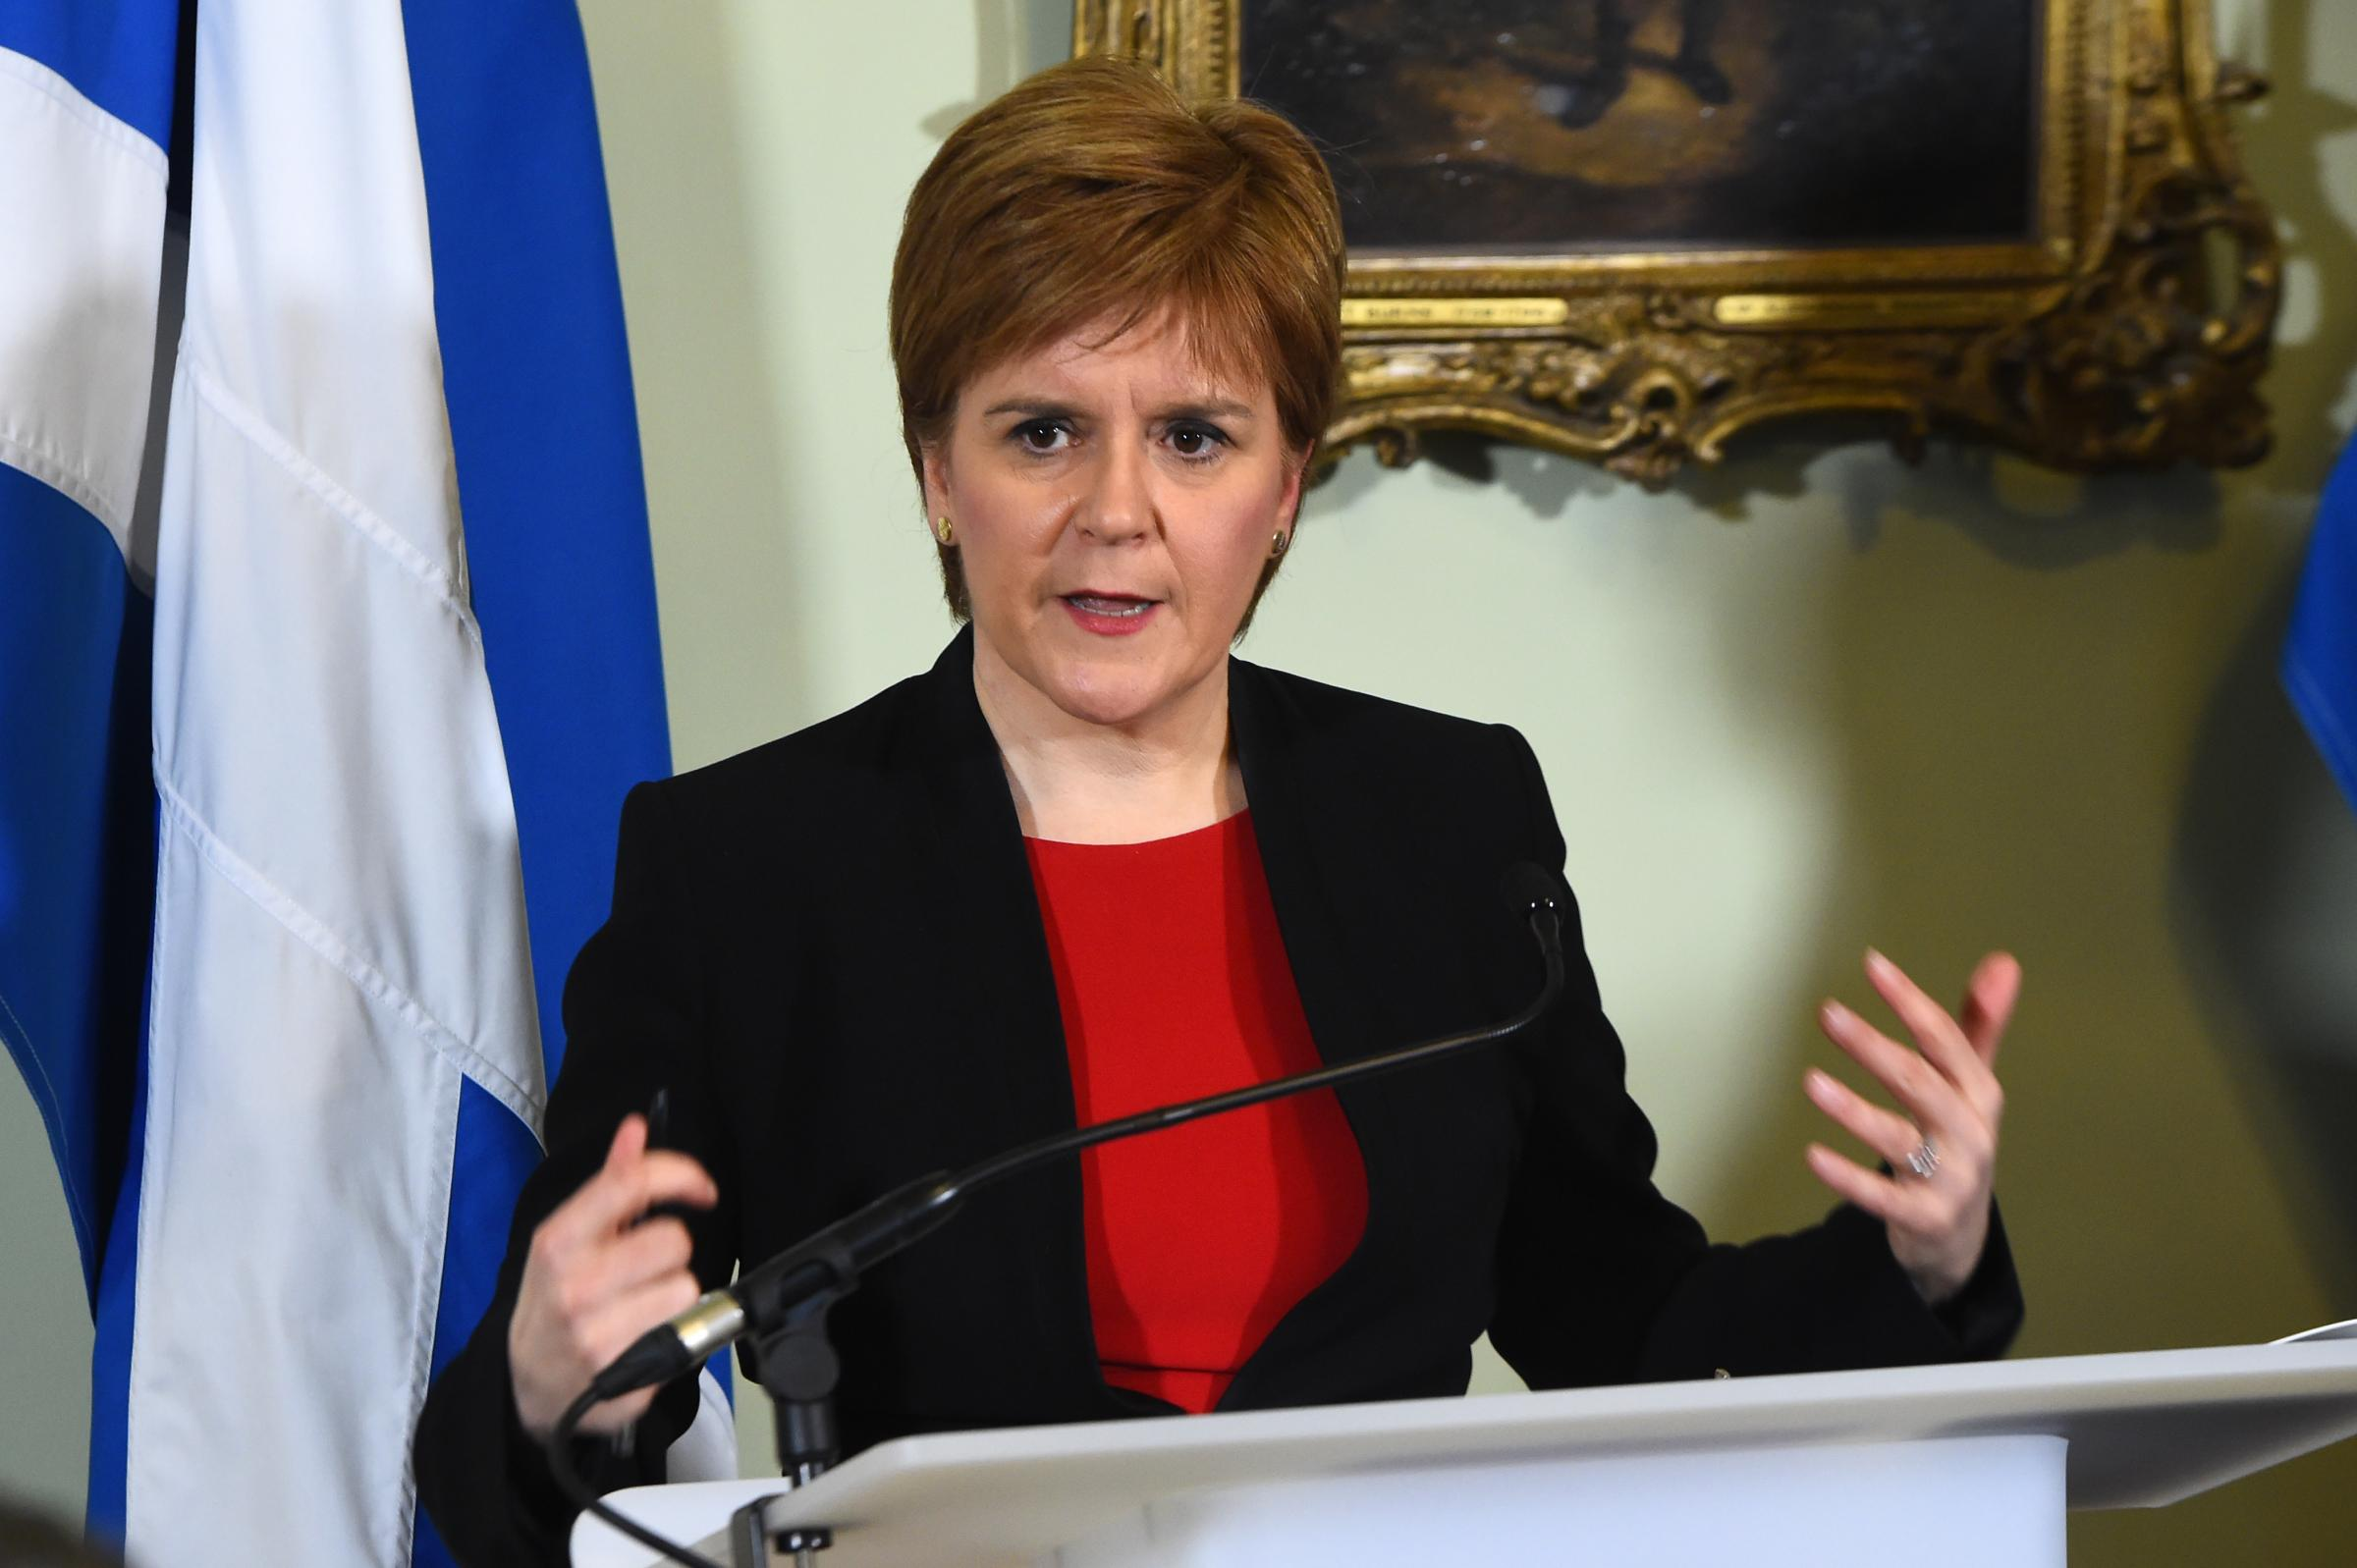 Nicola Sturgeon needs to think strategically